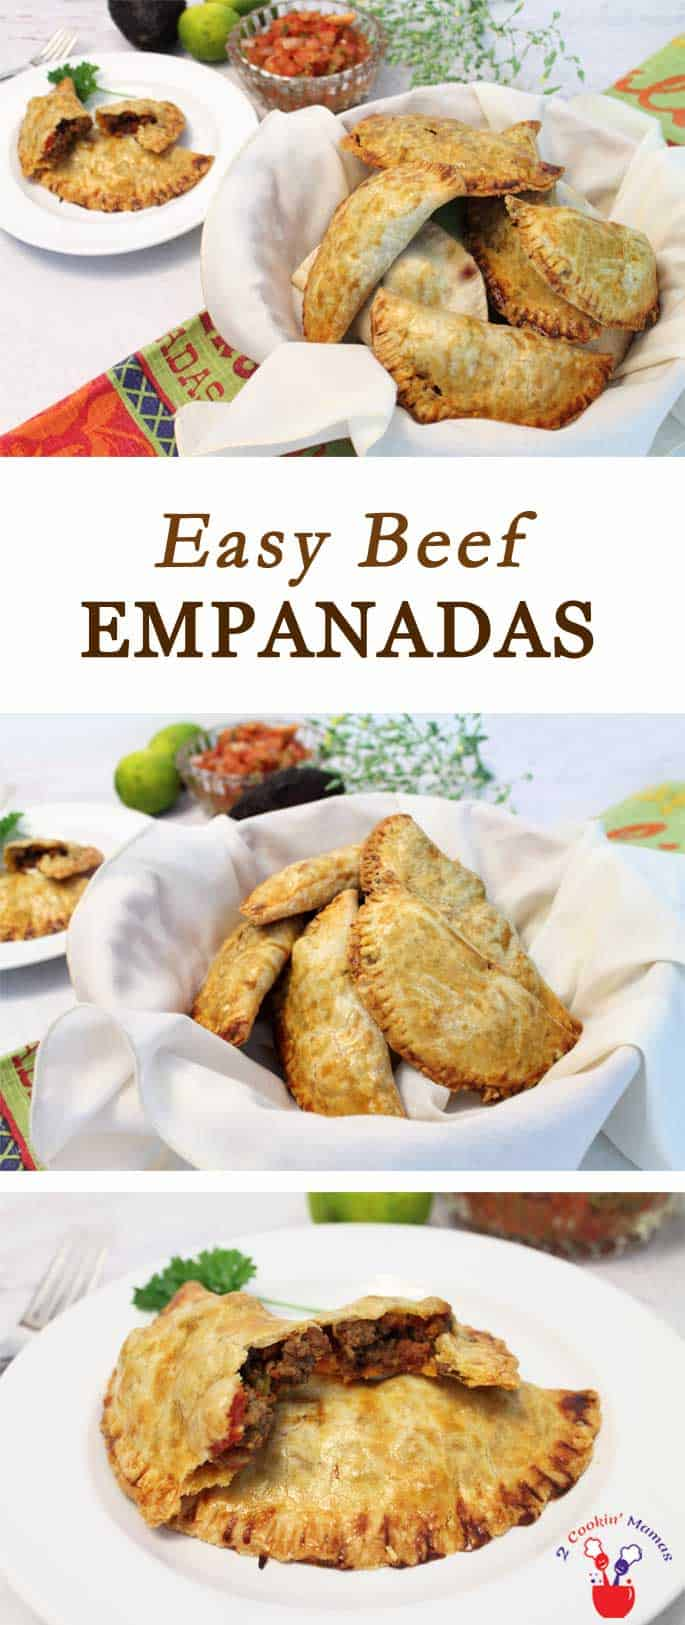 These easy beef empanadas are pockets of beef, chorizo and tomatoes baked up in a crispy pie crust. They go together in minutes & are always a party hit! #empanadas #groundbeef #appetizers #chorizo